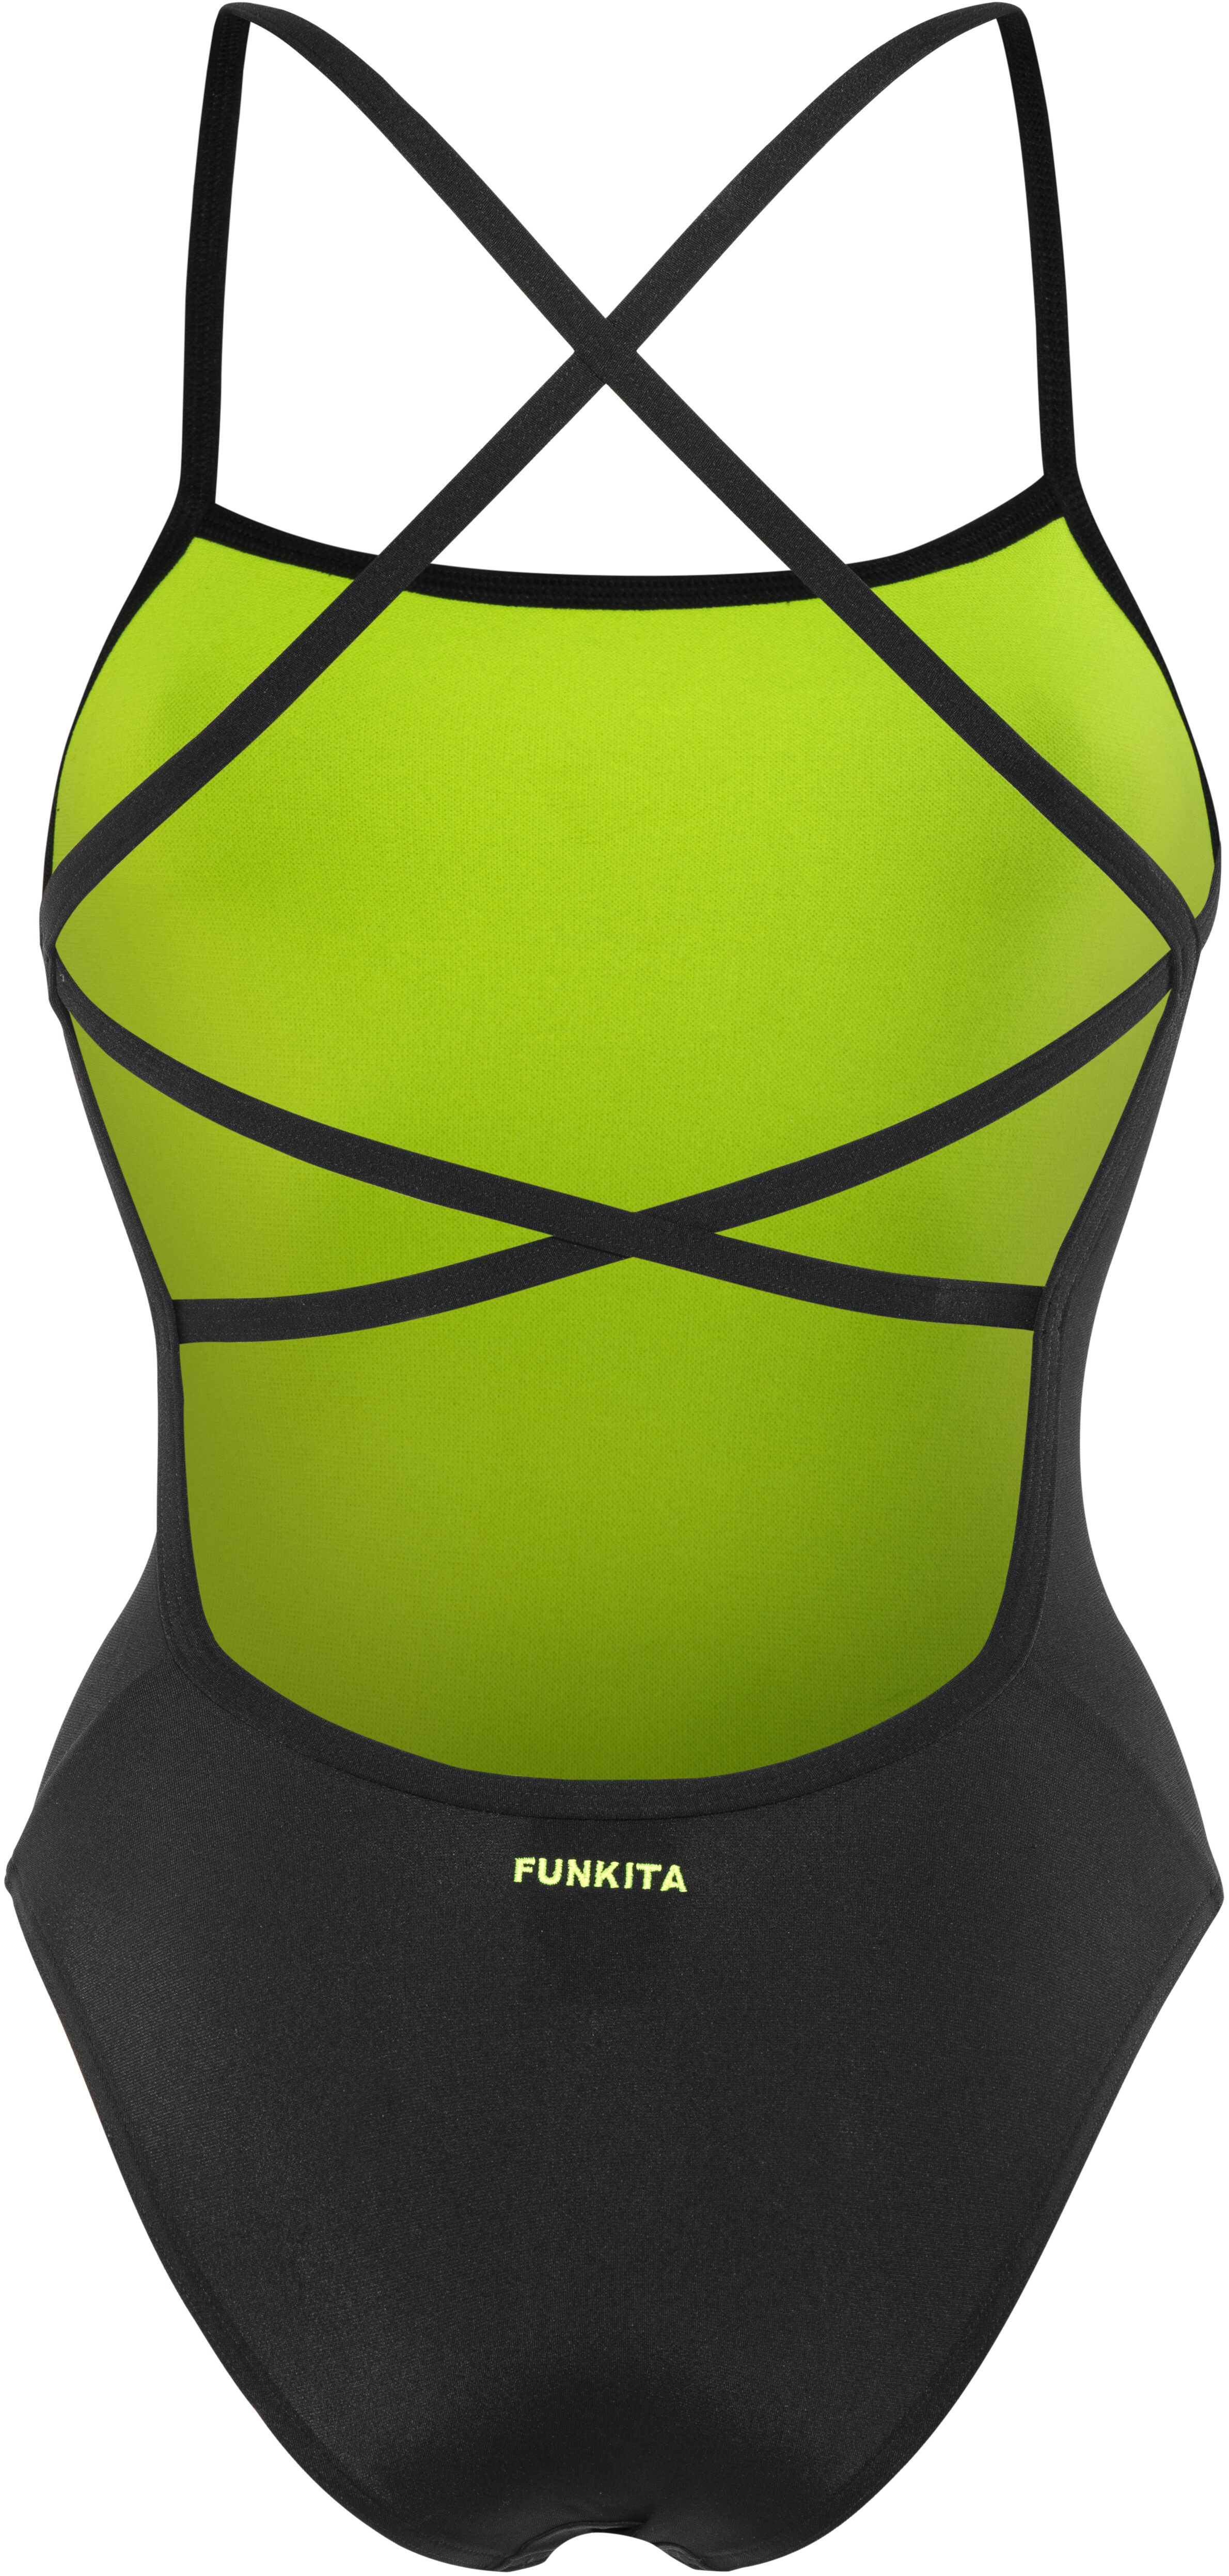 Funkita Strapped In One Piece Swimsuit Women Still Black Solid ... 4629076a12